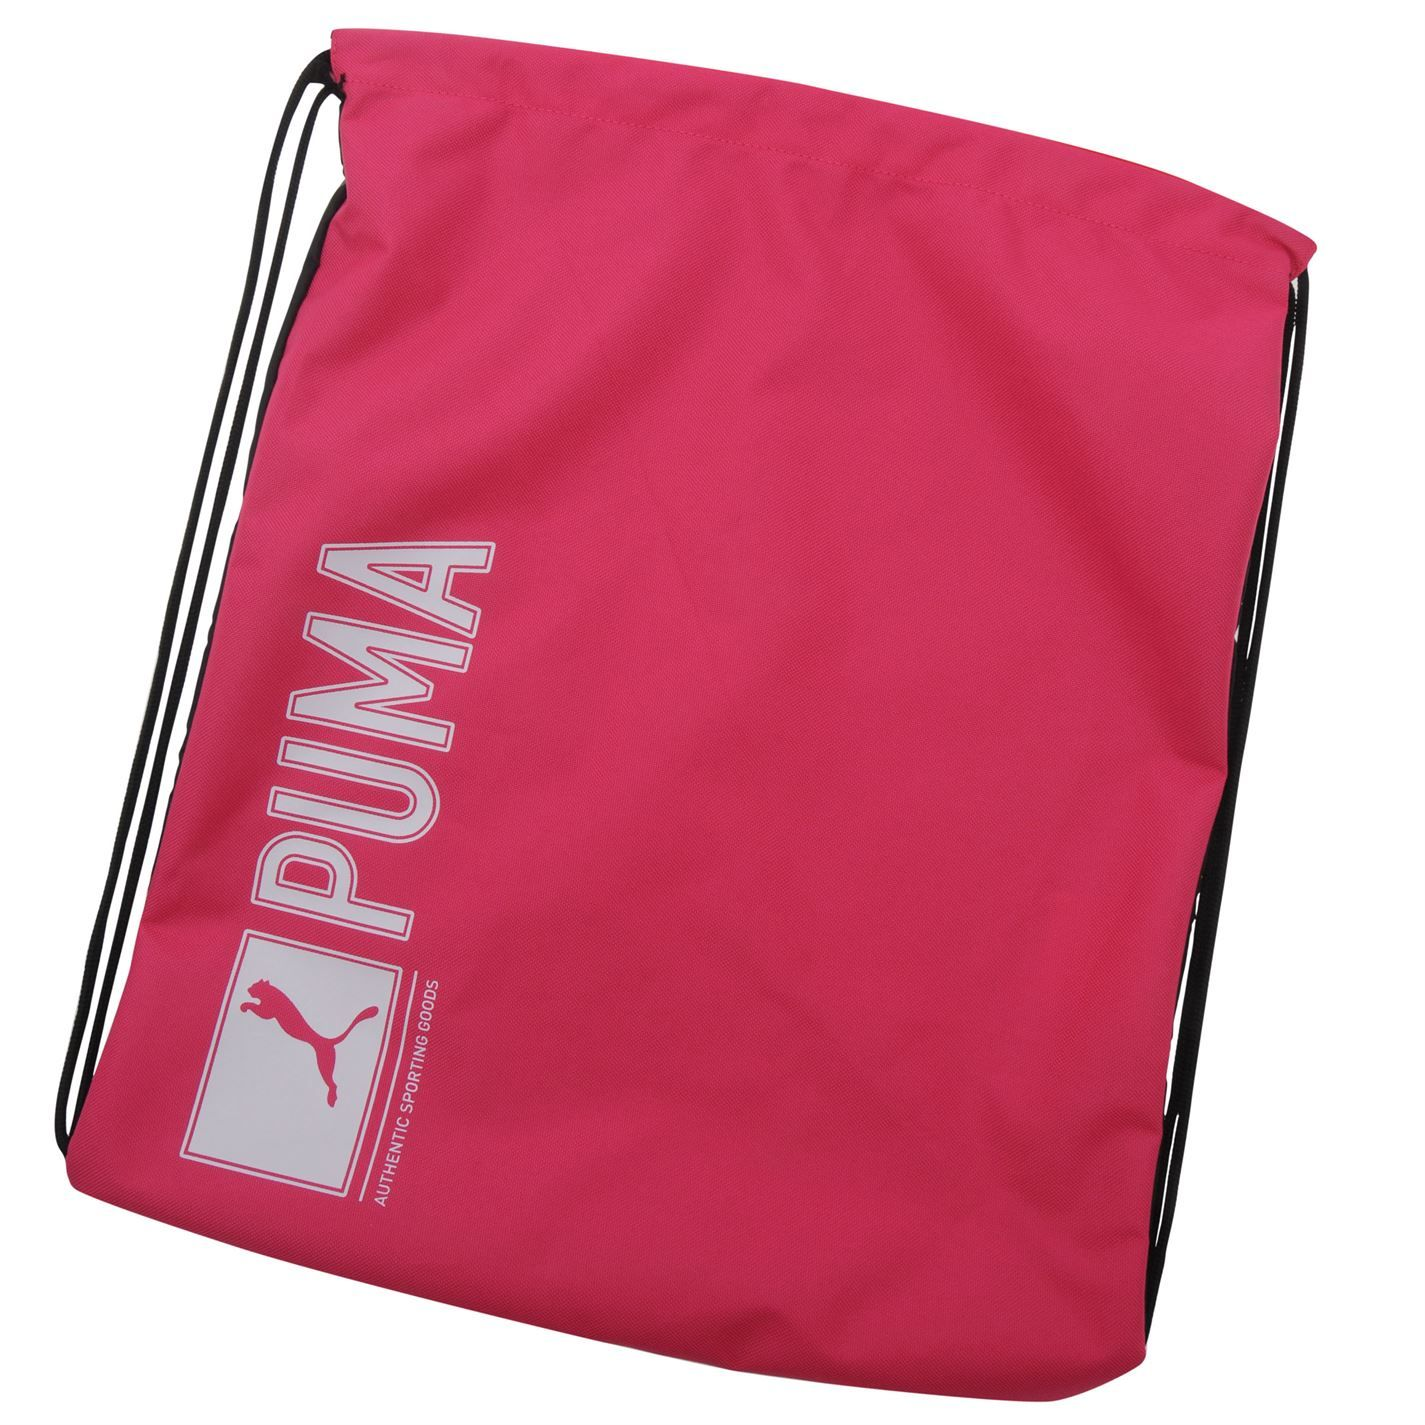 Puma Bags Sports Direct | Sabis Bulldog Athletics